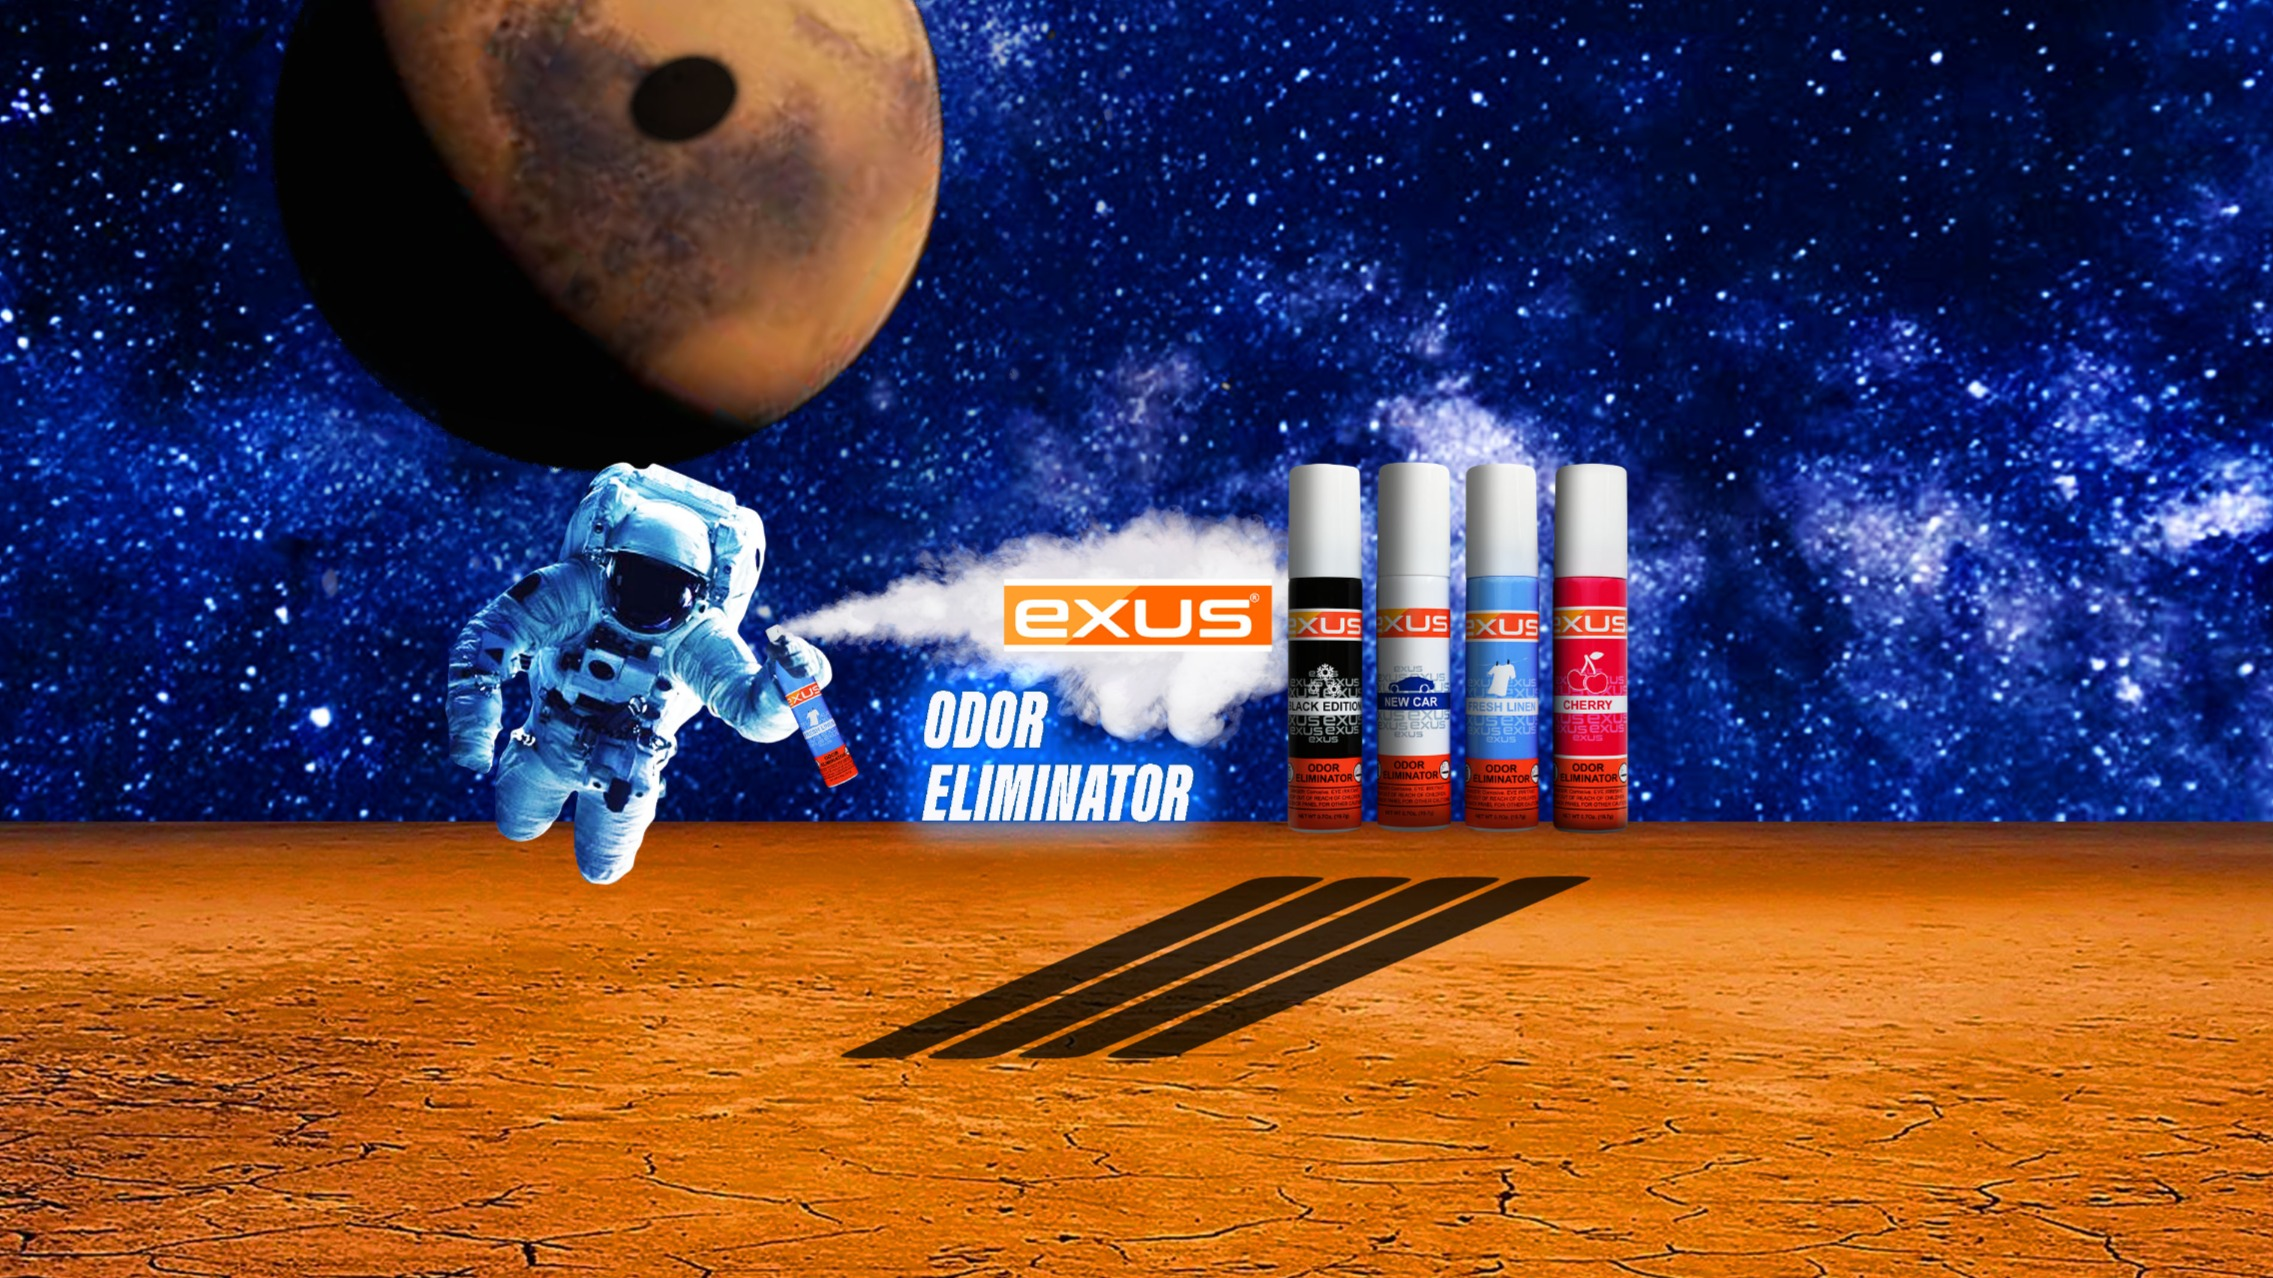 exus space web page_edited.jpg